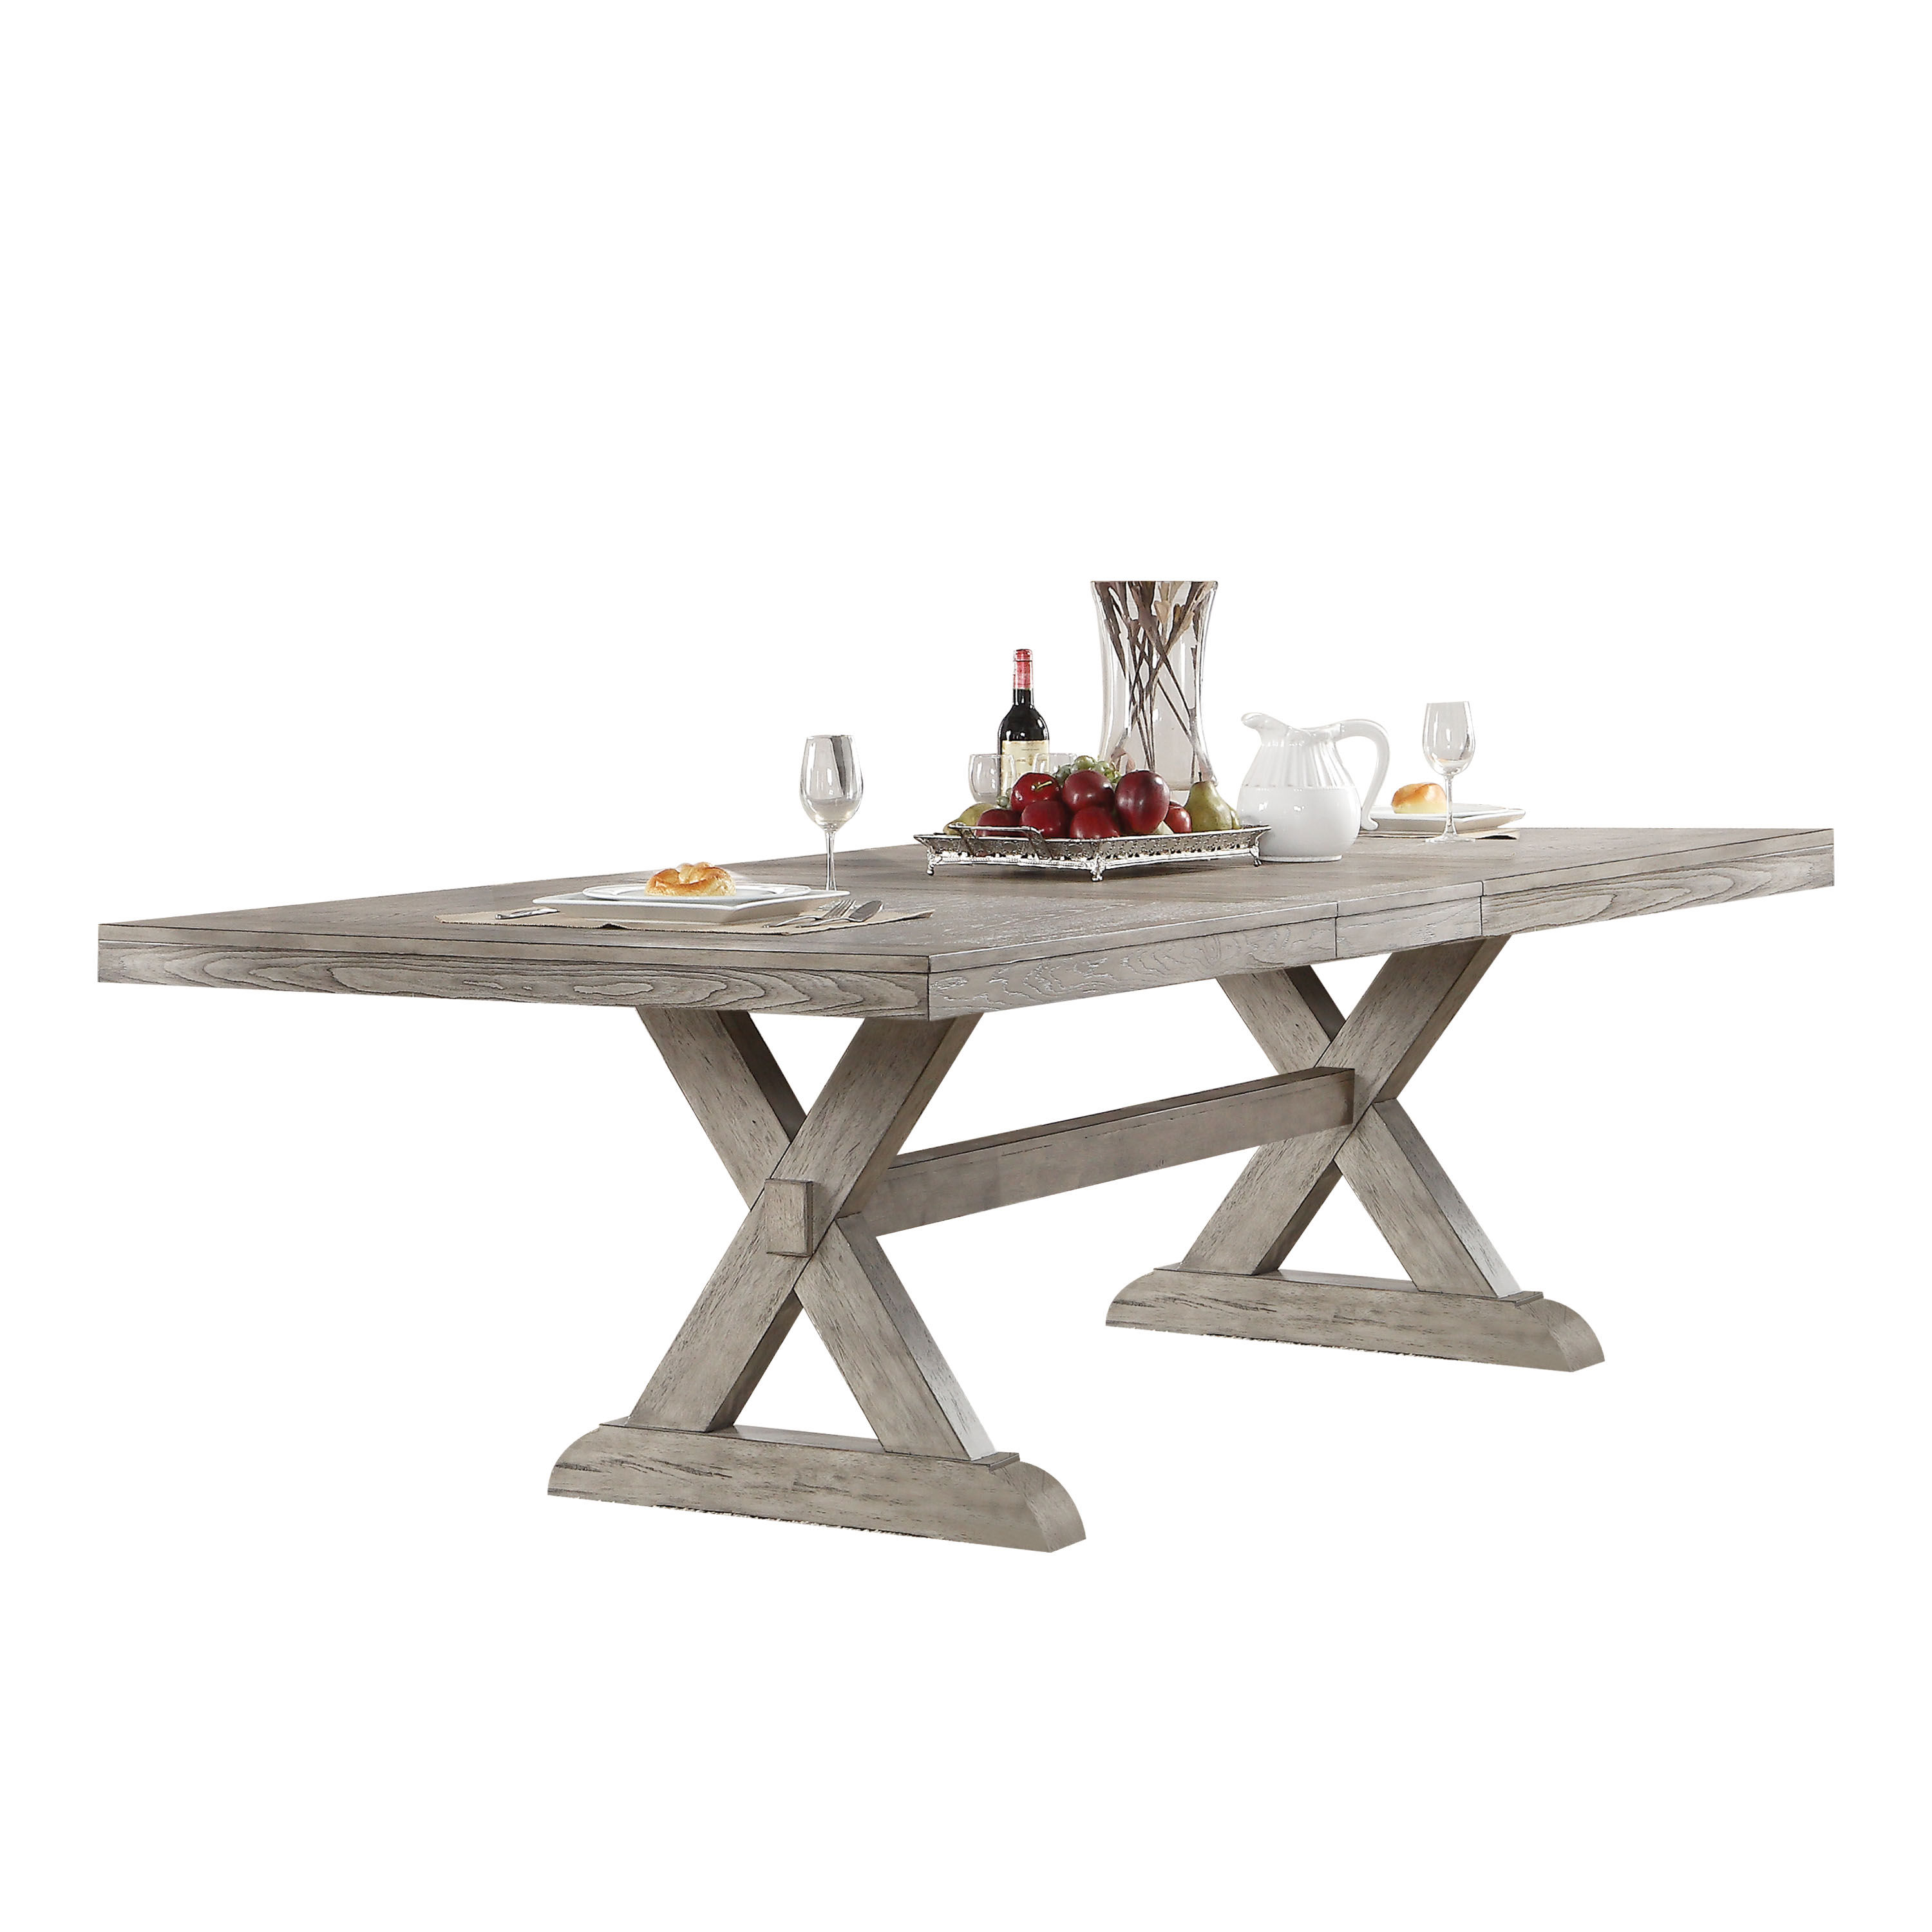 40e2d88afd65 Acme Furniture Rocky Oak Dining Table | The Classy Home